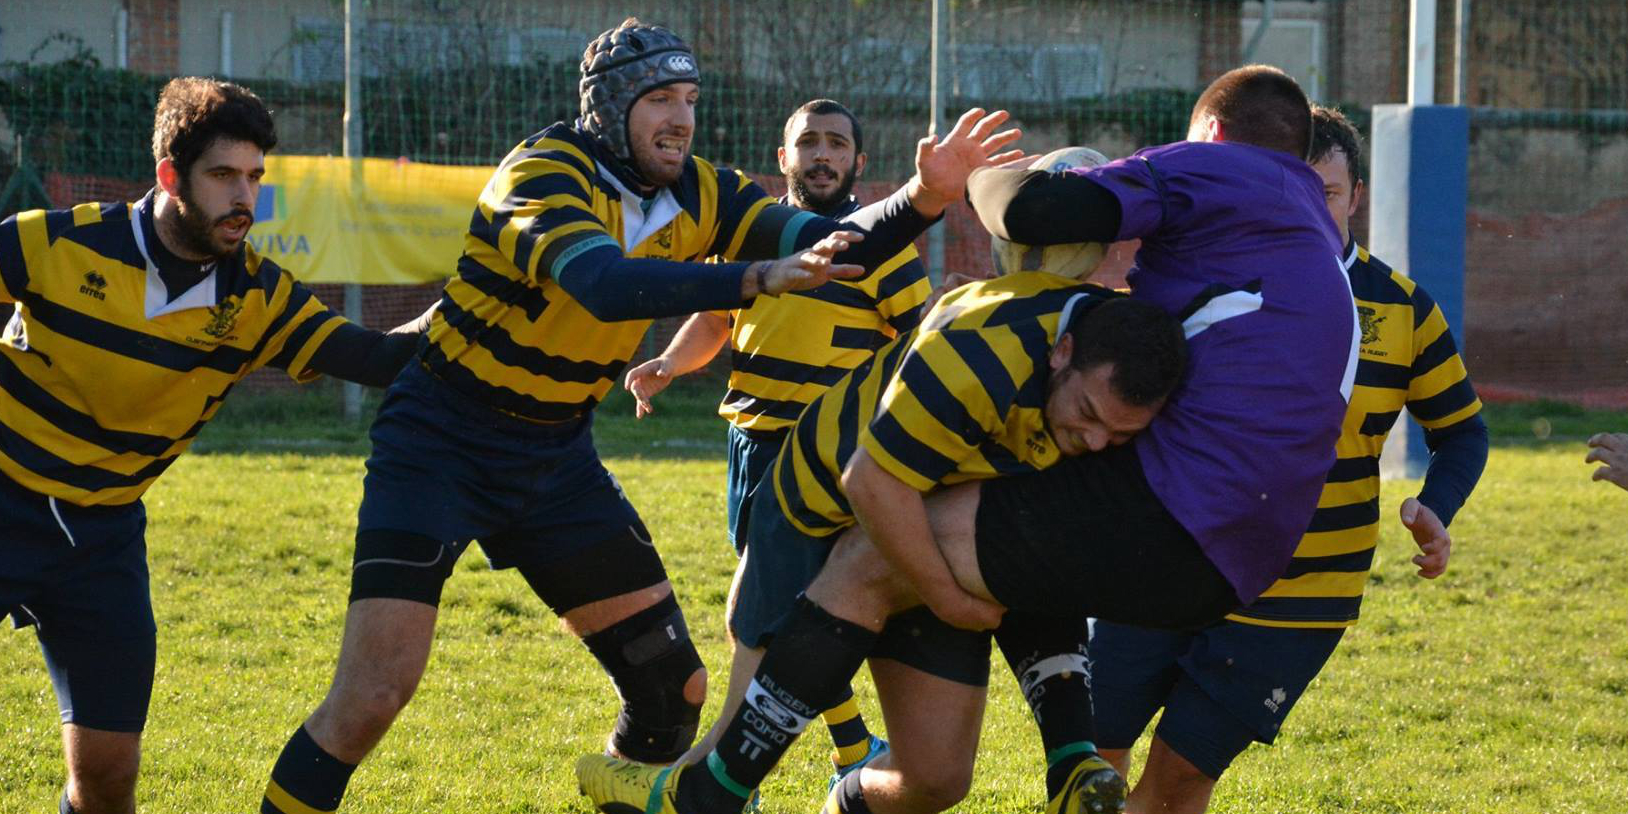 Rugby Cus Pavia